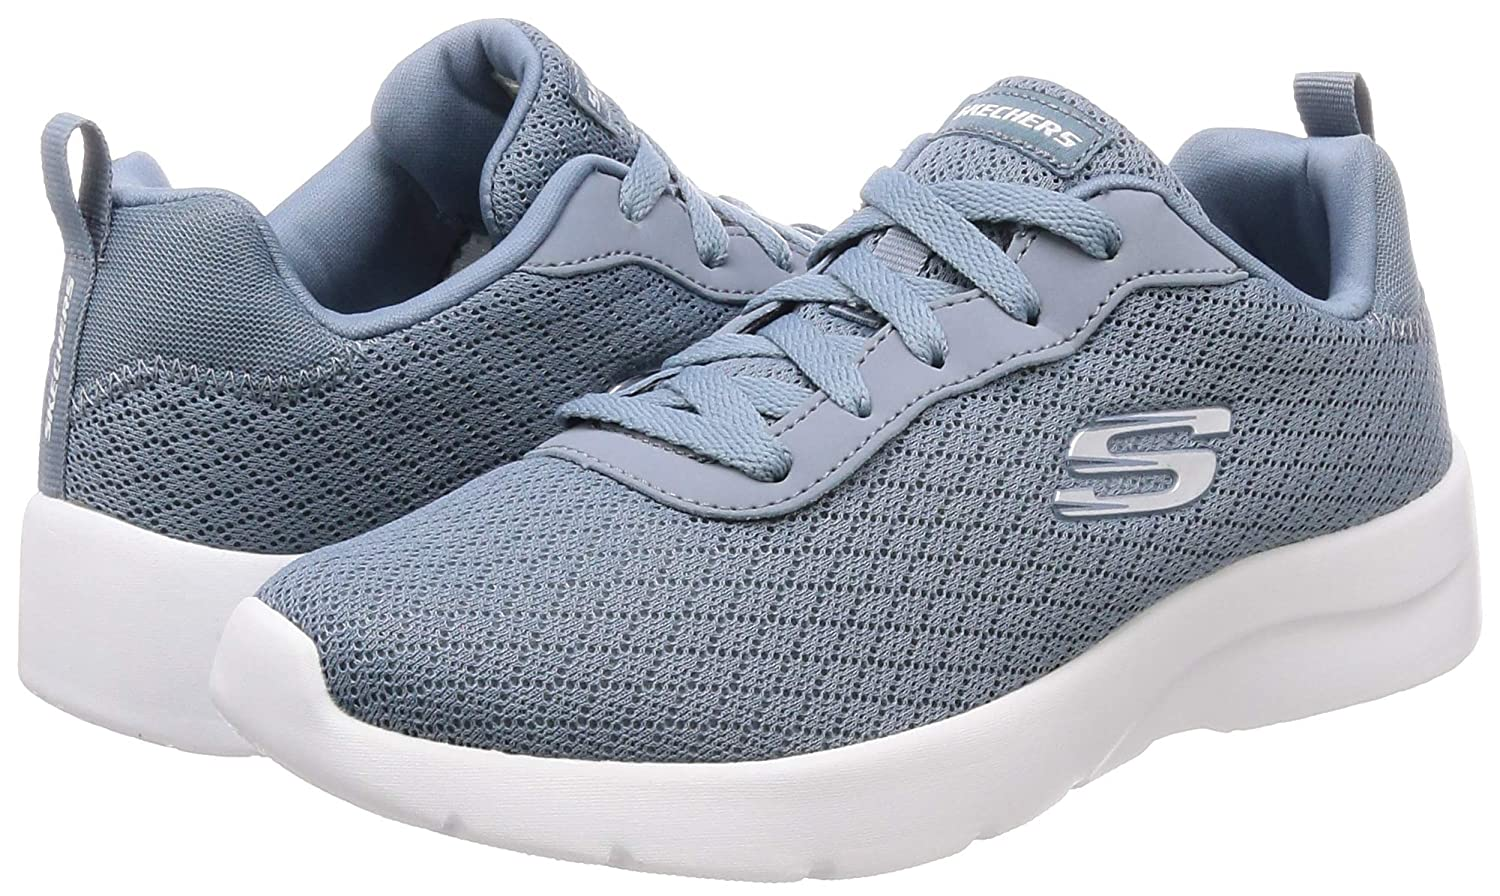 SKECHERS SKECHERS SKECHERS DYNAMIGHT2.0 Eye TO Eye 5d1809